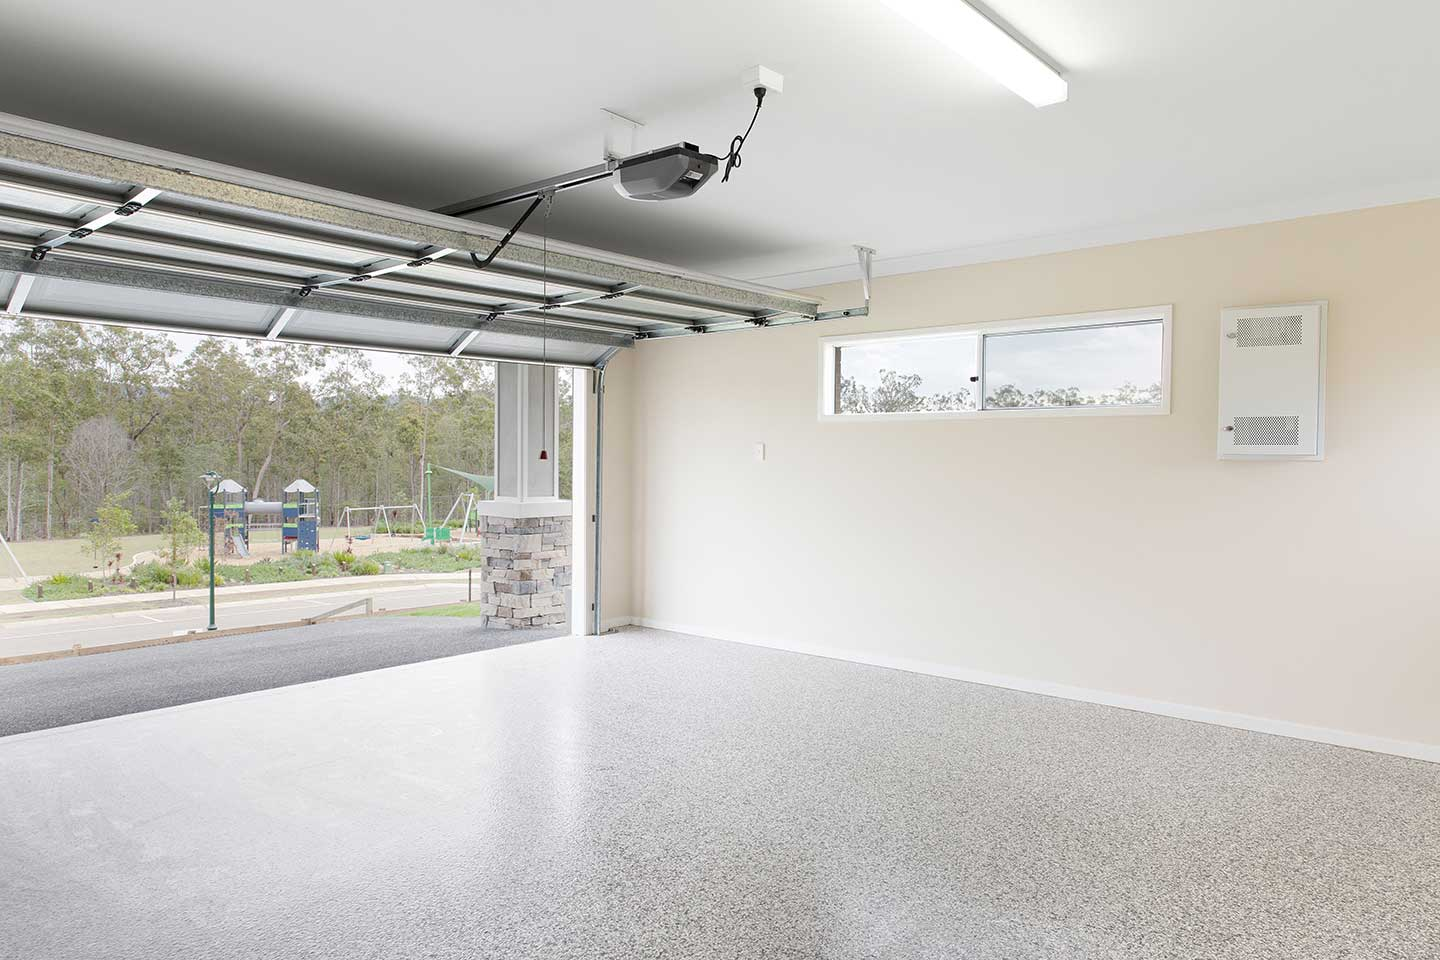 Garage with Epoxy